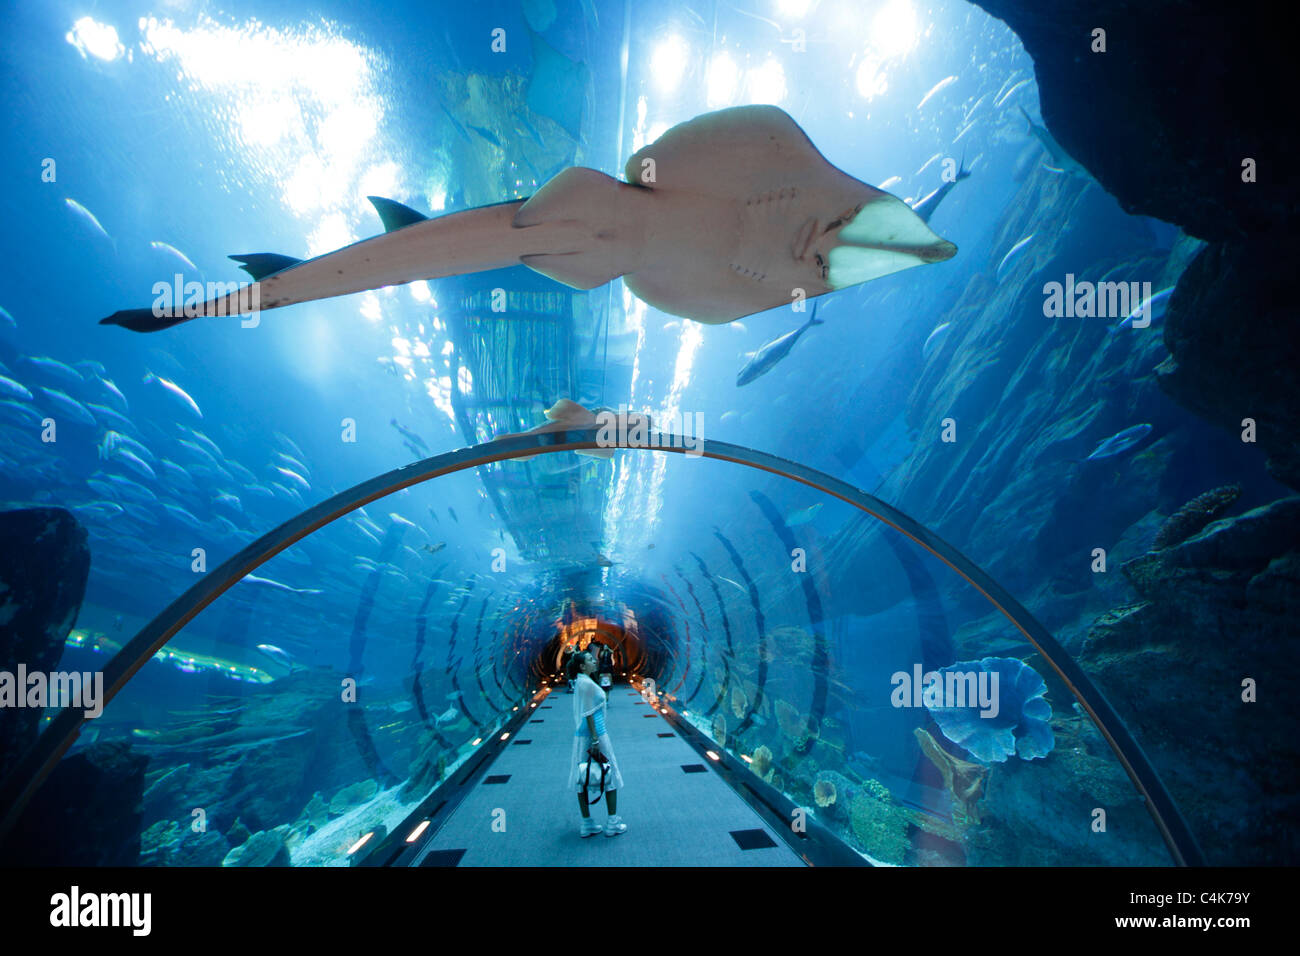 Aquarium and underwater Zoo in the Dubai Mall, Dubai, United Arab Emirates - Stock Image